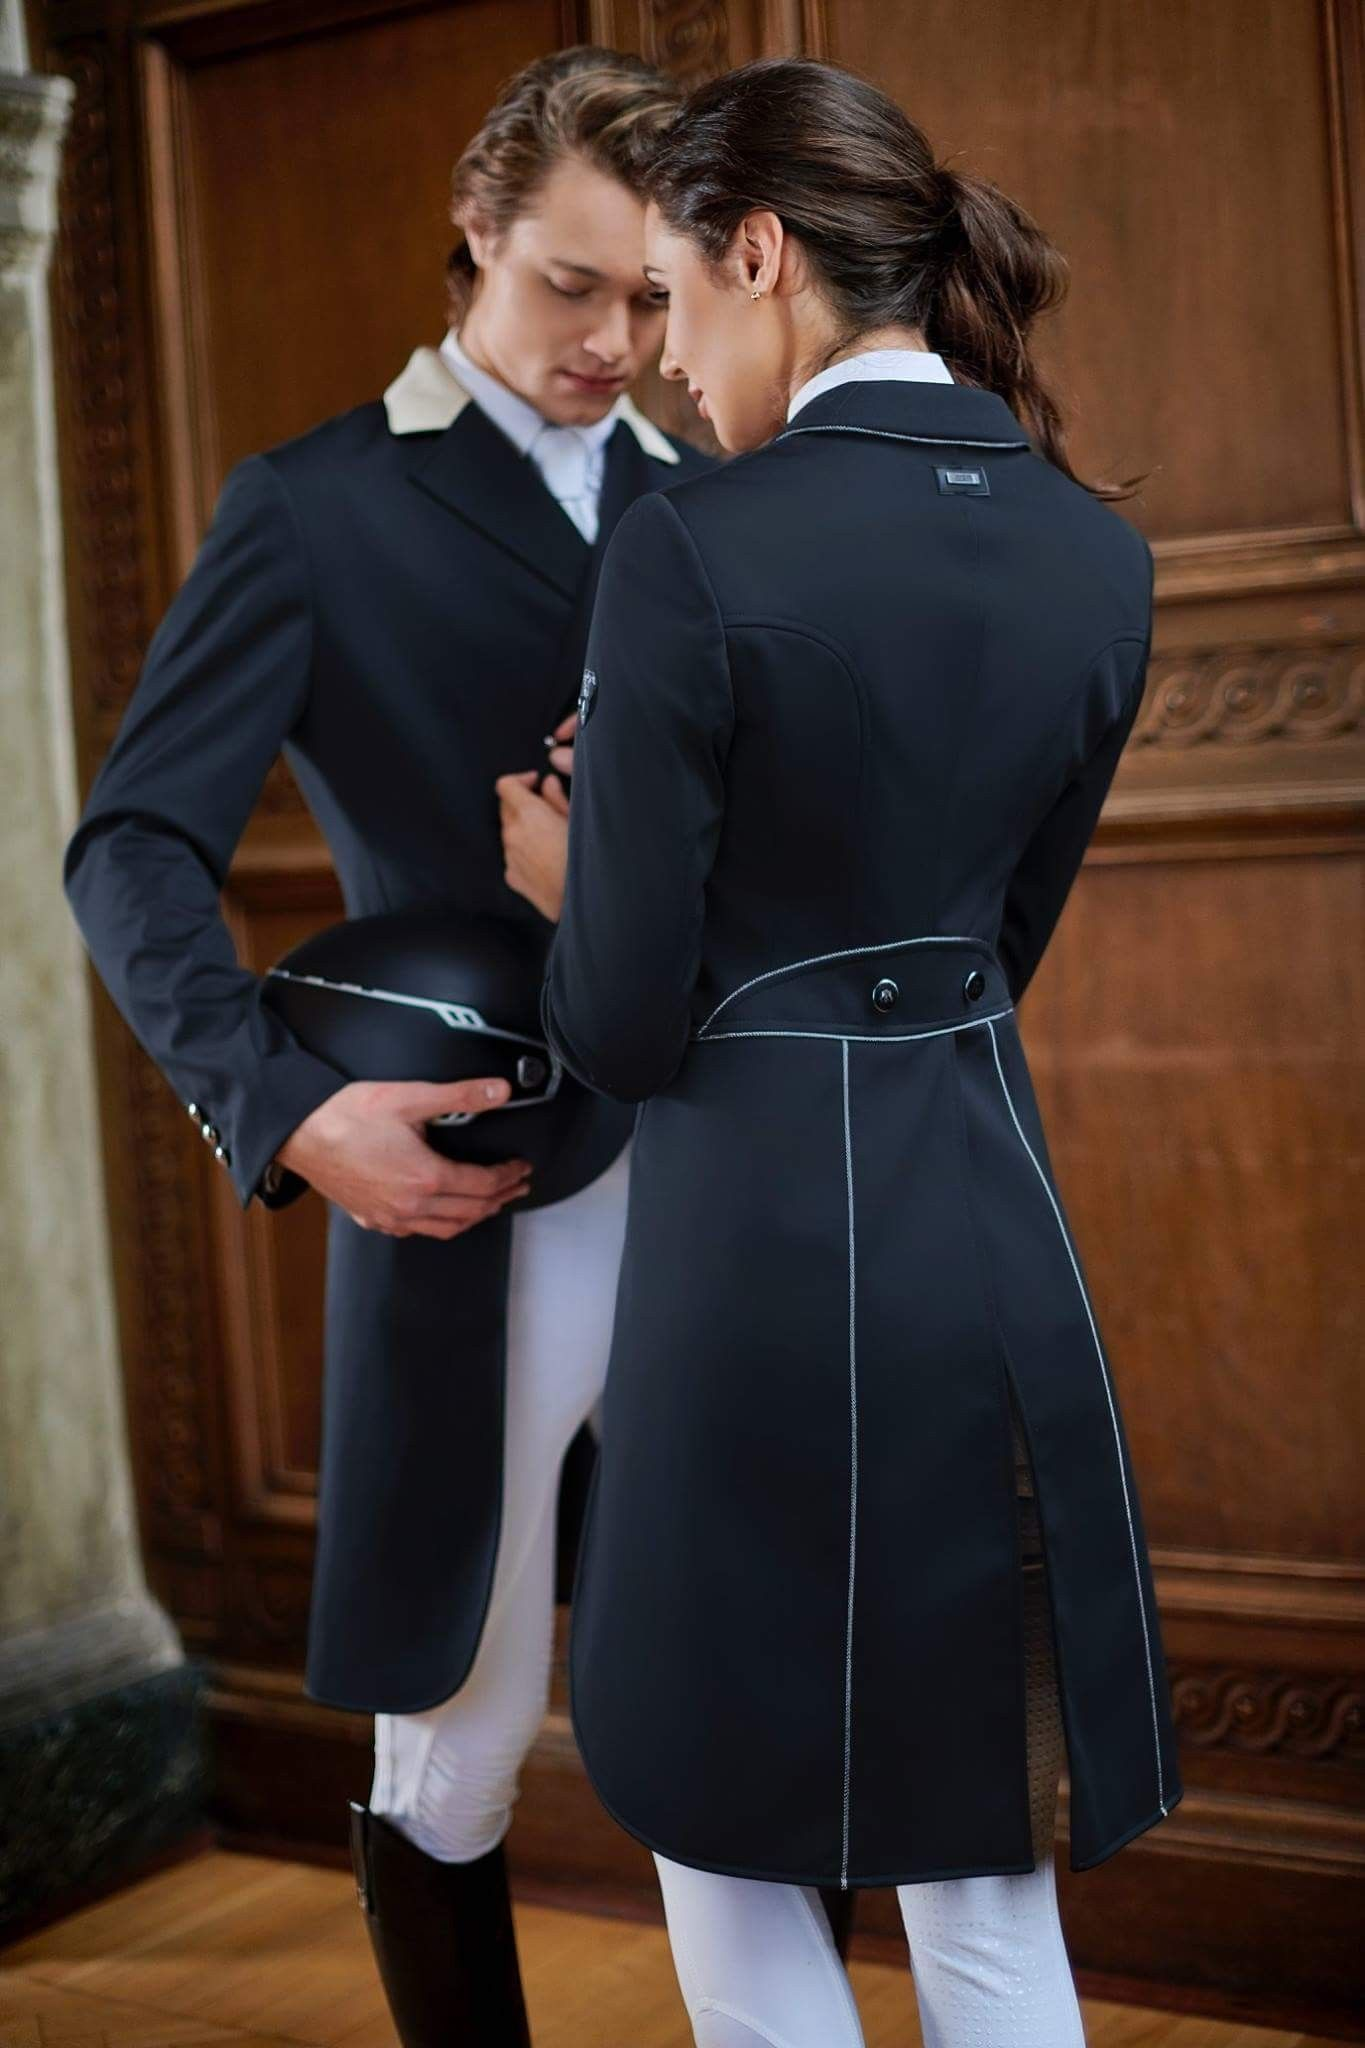 Fairplay Dressage Tailcoat For Her And For Him Fashion Dressage Coats Riding Outfit [ 2048 x 1365 Pixel ]